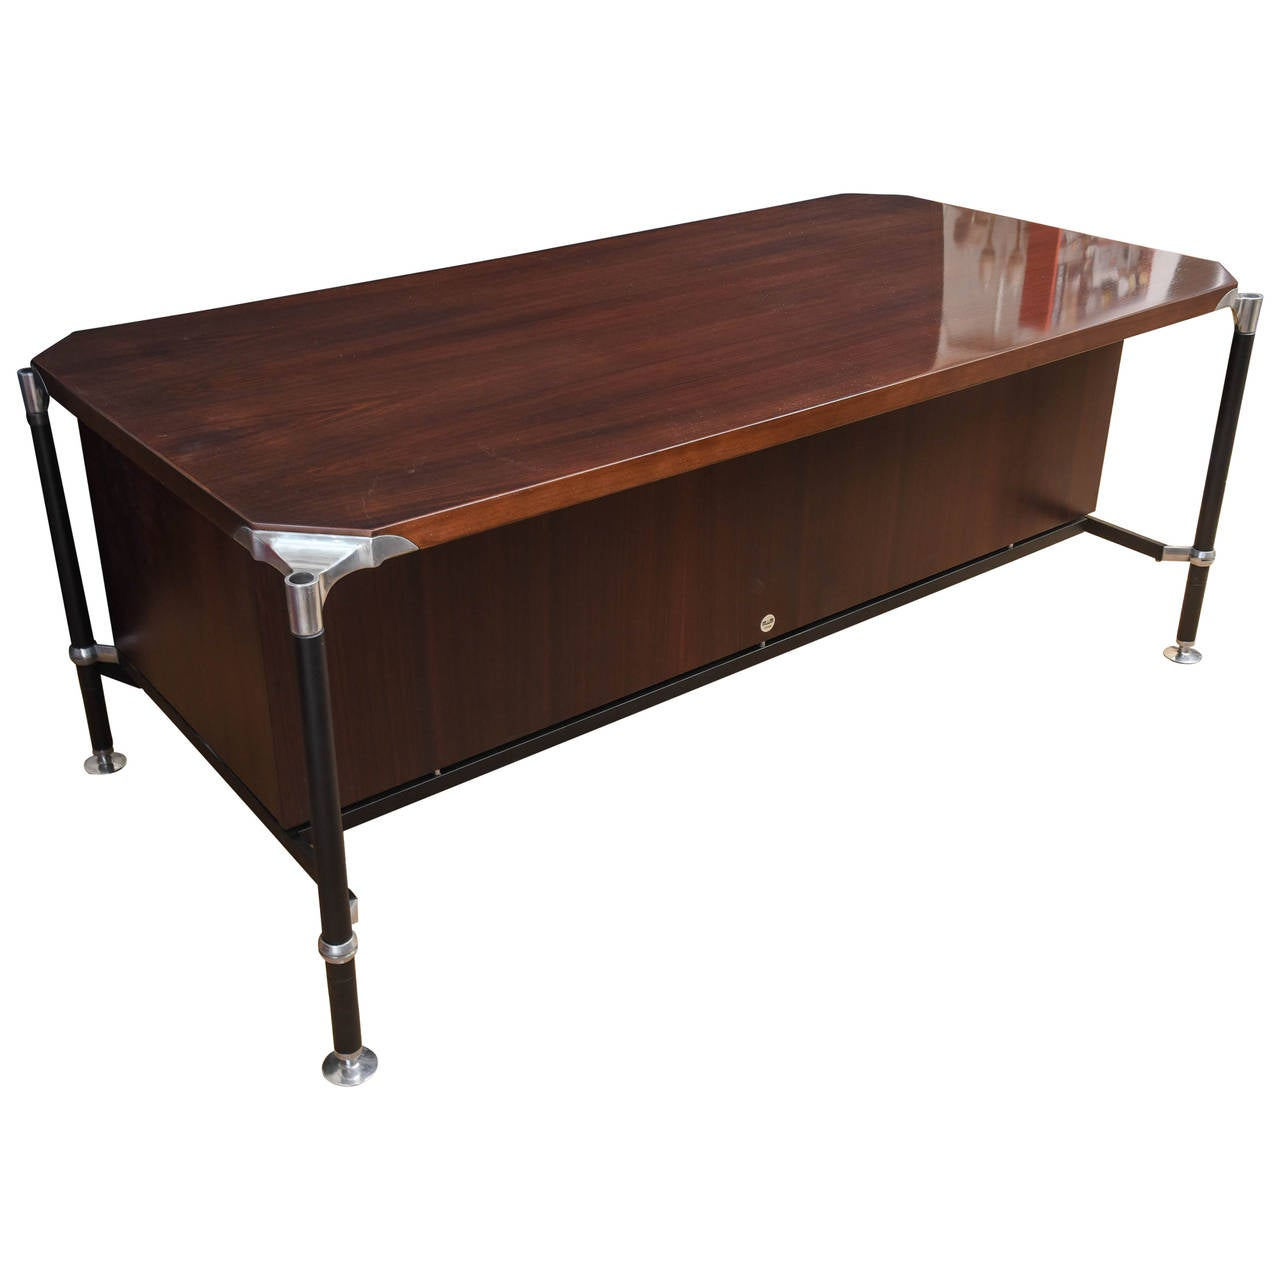 Ico Parisi Desk For Sale